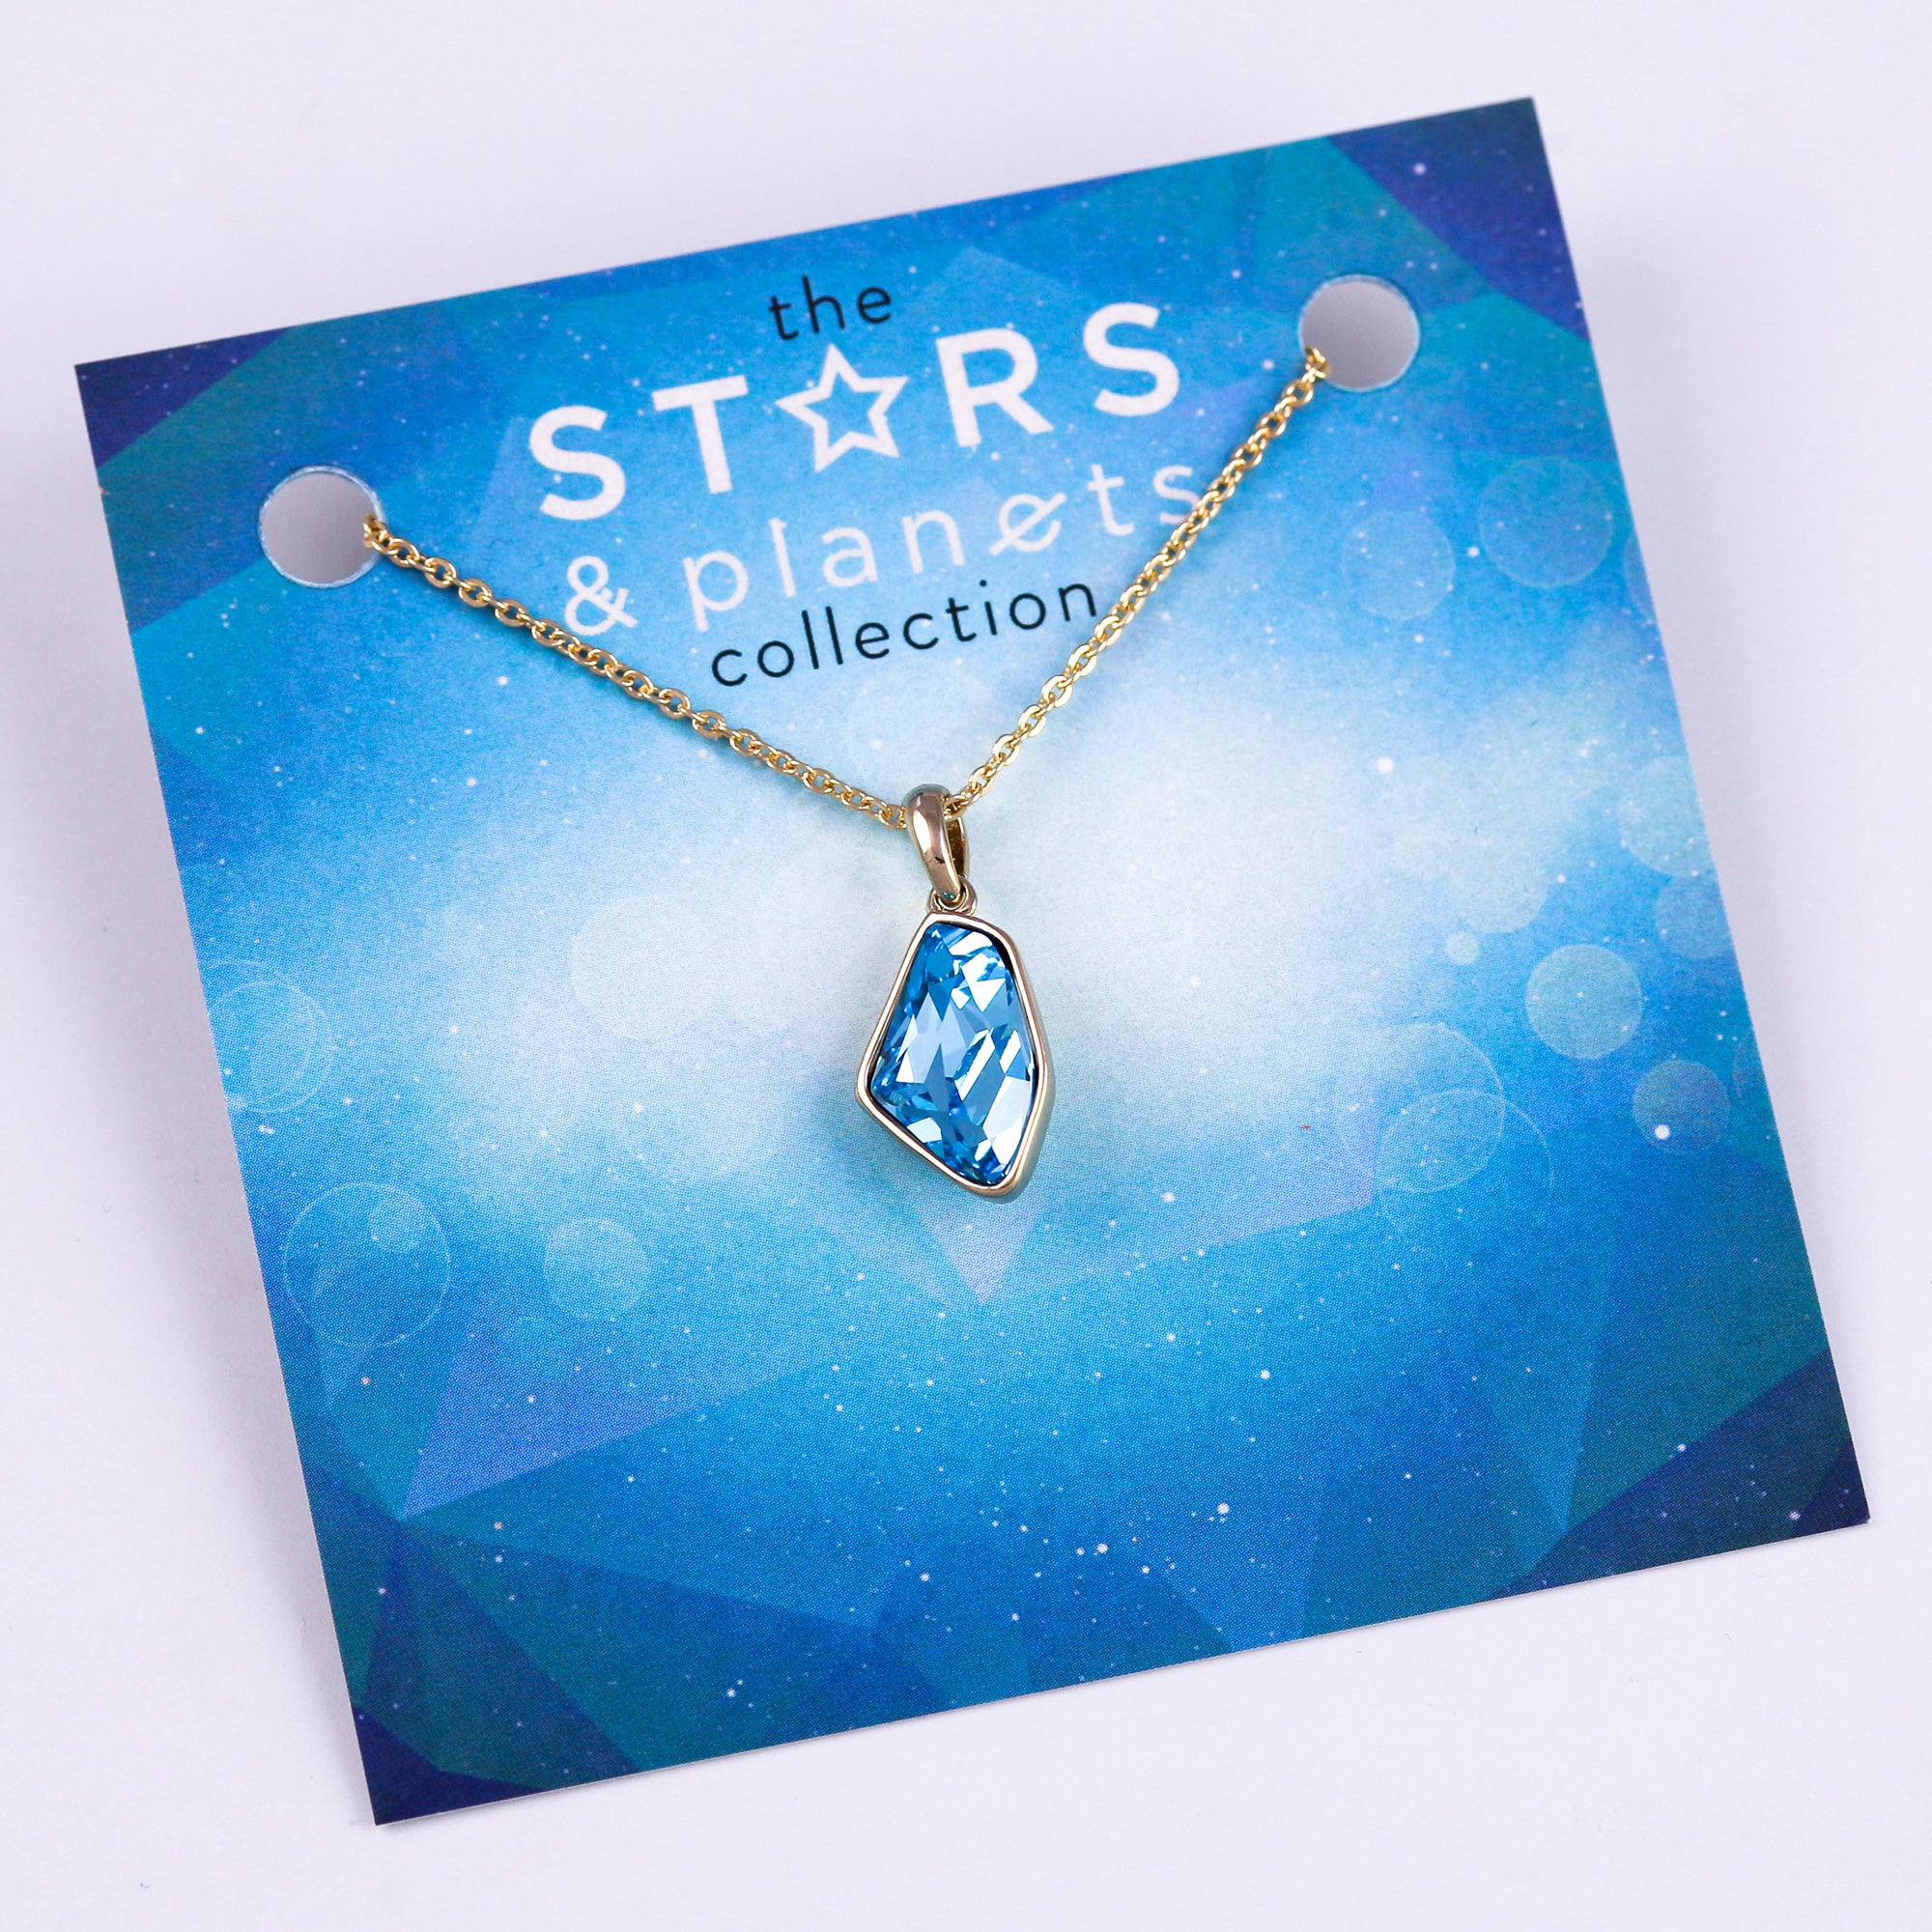 Gold Aquamarine Asteroid Necklace Stars & Planets Collection